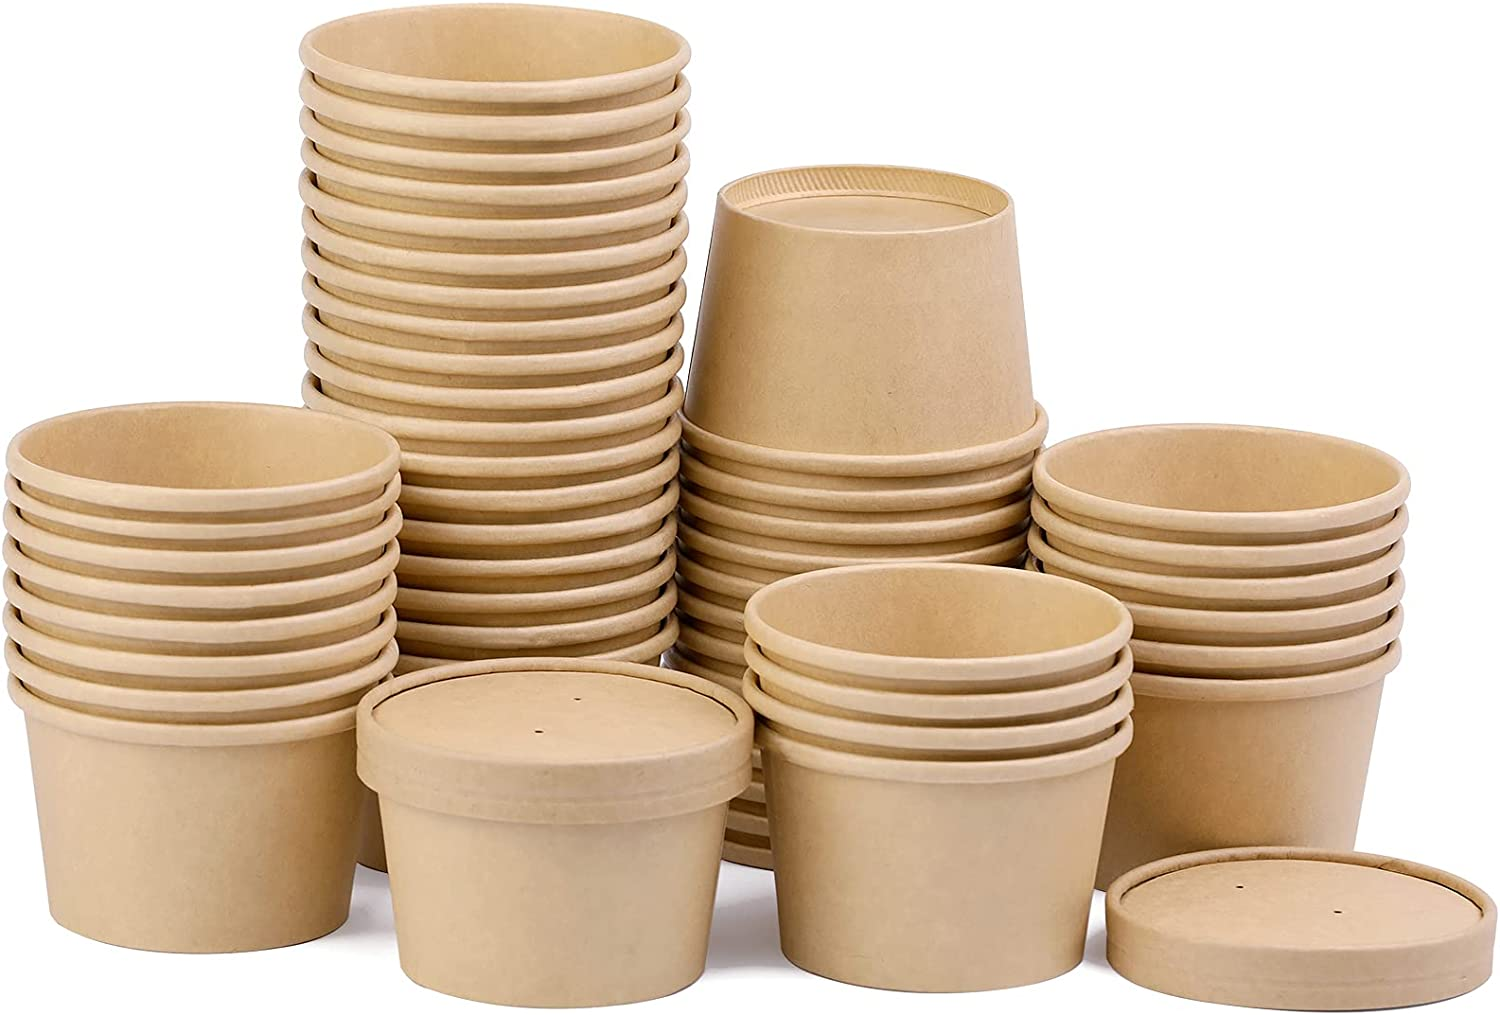 50 Packs 8oz Disposable Kraft Paper Cups Container, Kraft Paper Food Cup With Lids, Paper Soup Containers for Frozen Yogurt, Chili, Dessert, Ice Cream, To Go for Restaurants, Delis, and Cafes